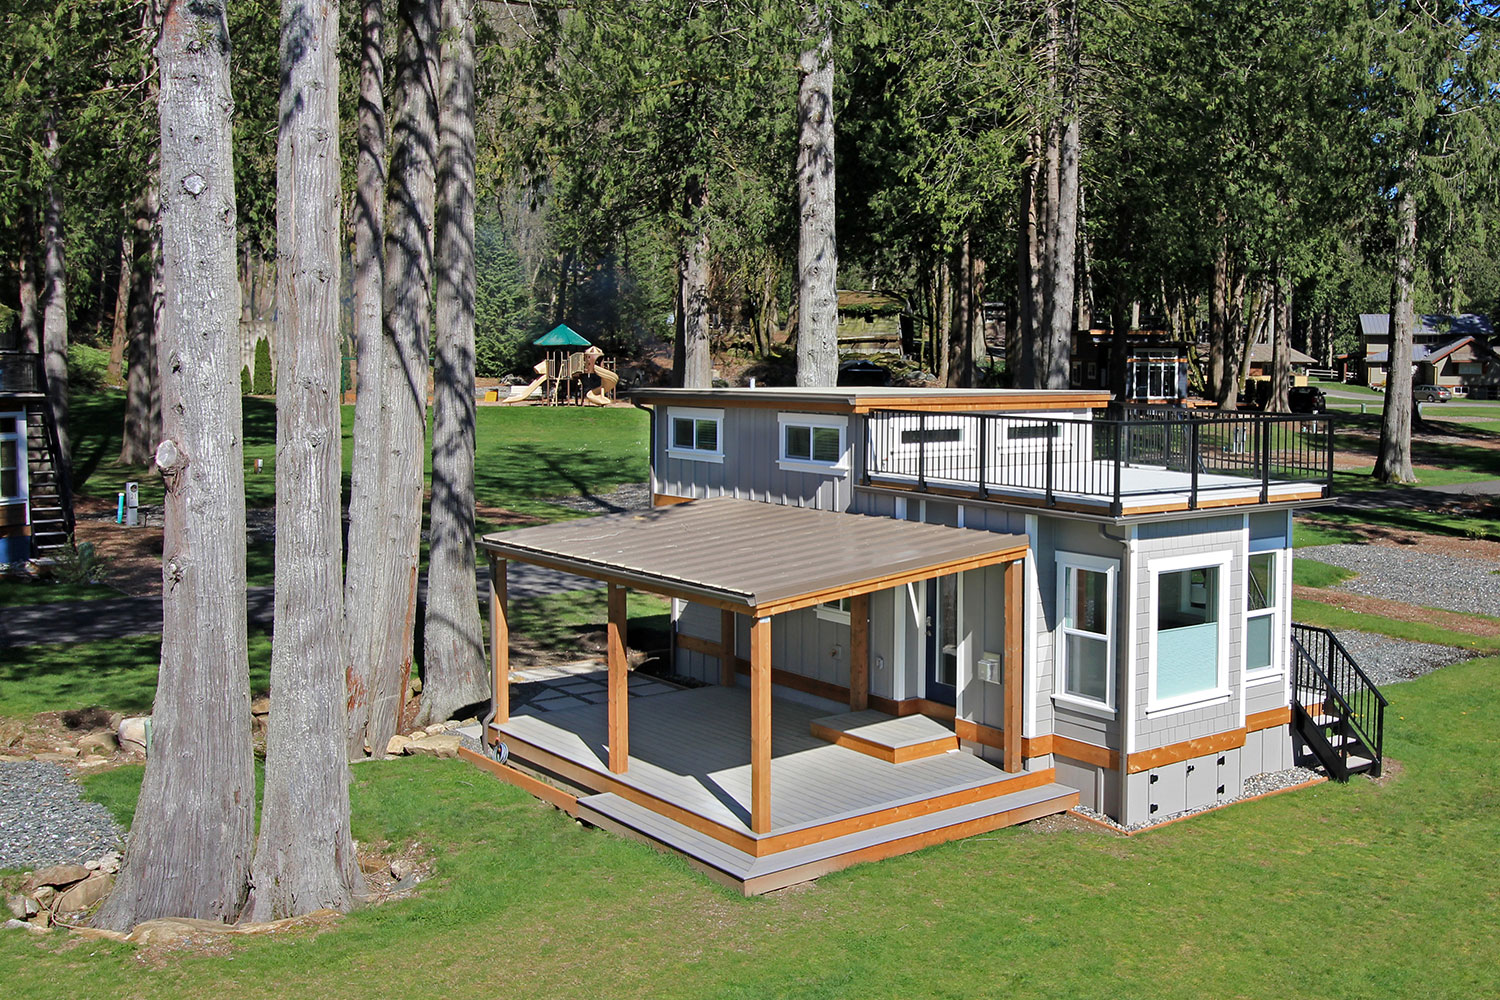 Bellevue 37 Park Model Tiny Home Exterior